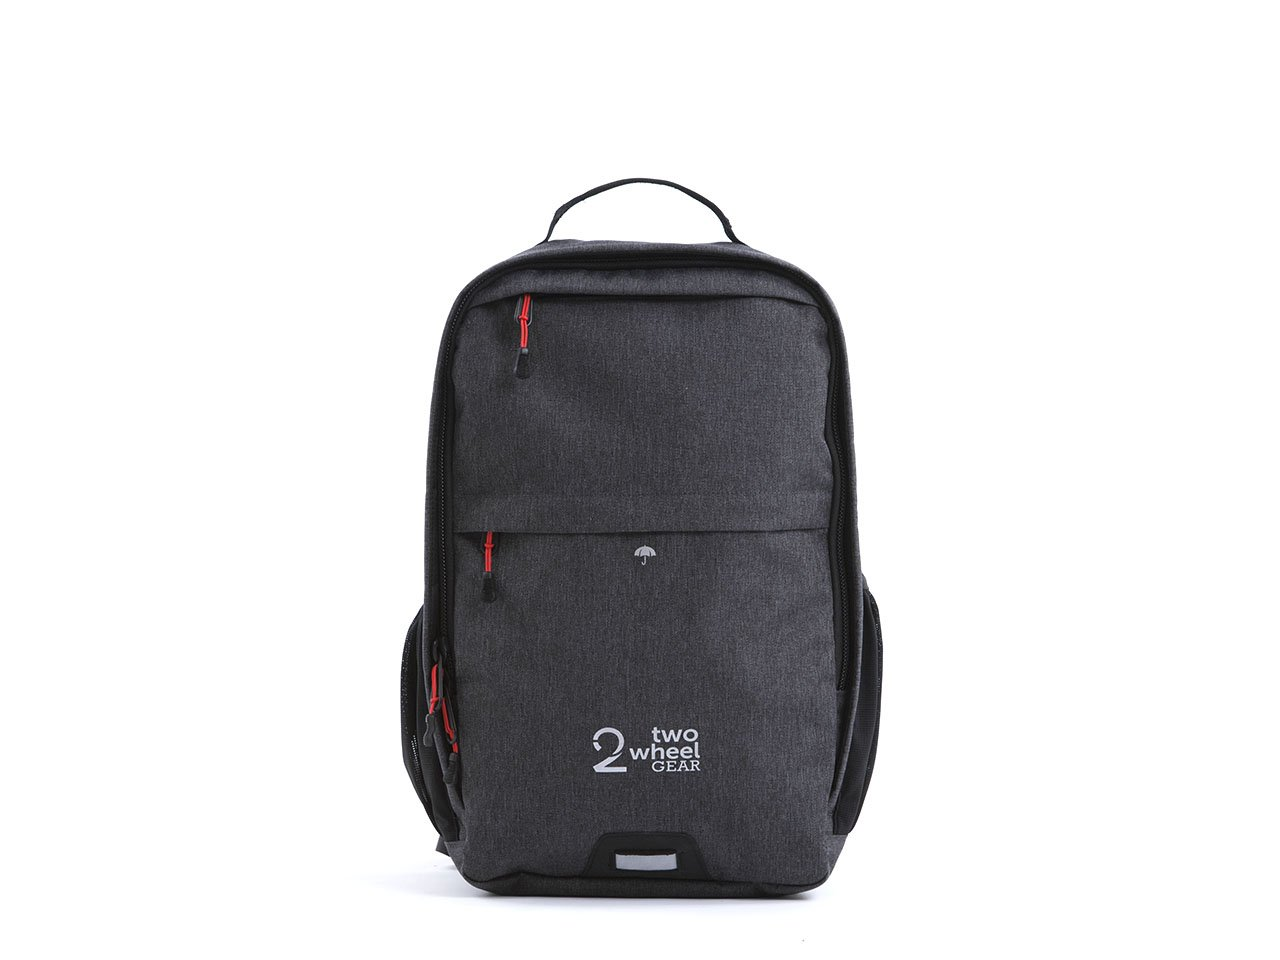 Backpack_Graphite_Front_409aea2b-424f-4852-8cfe-5e01a8937c06